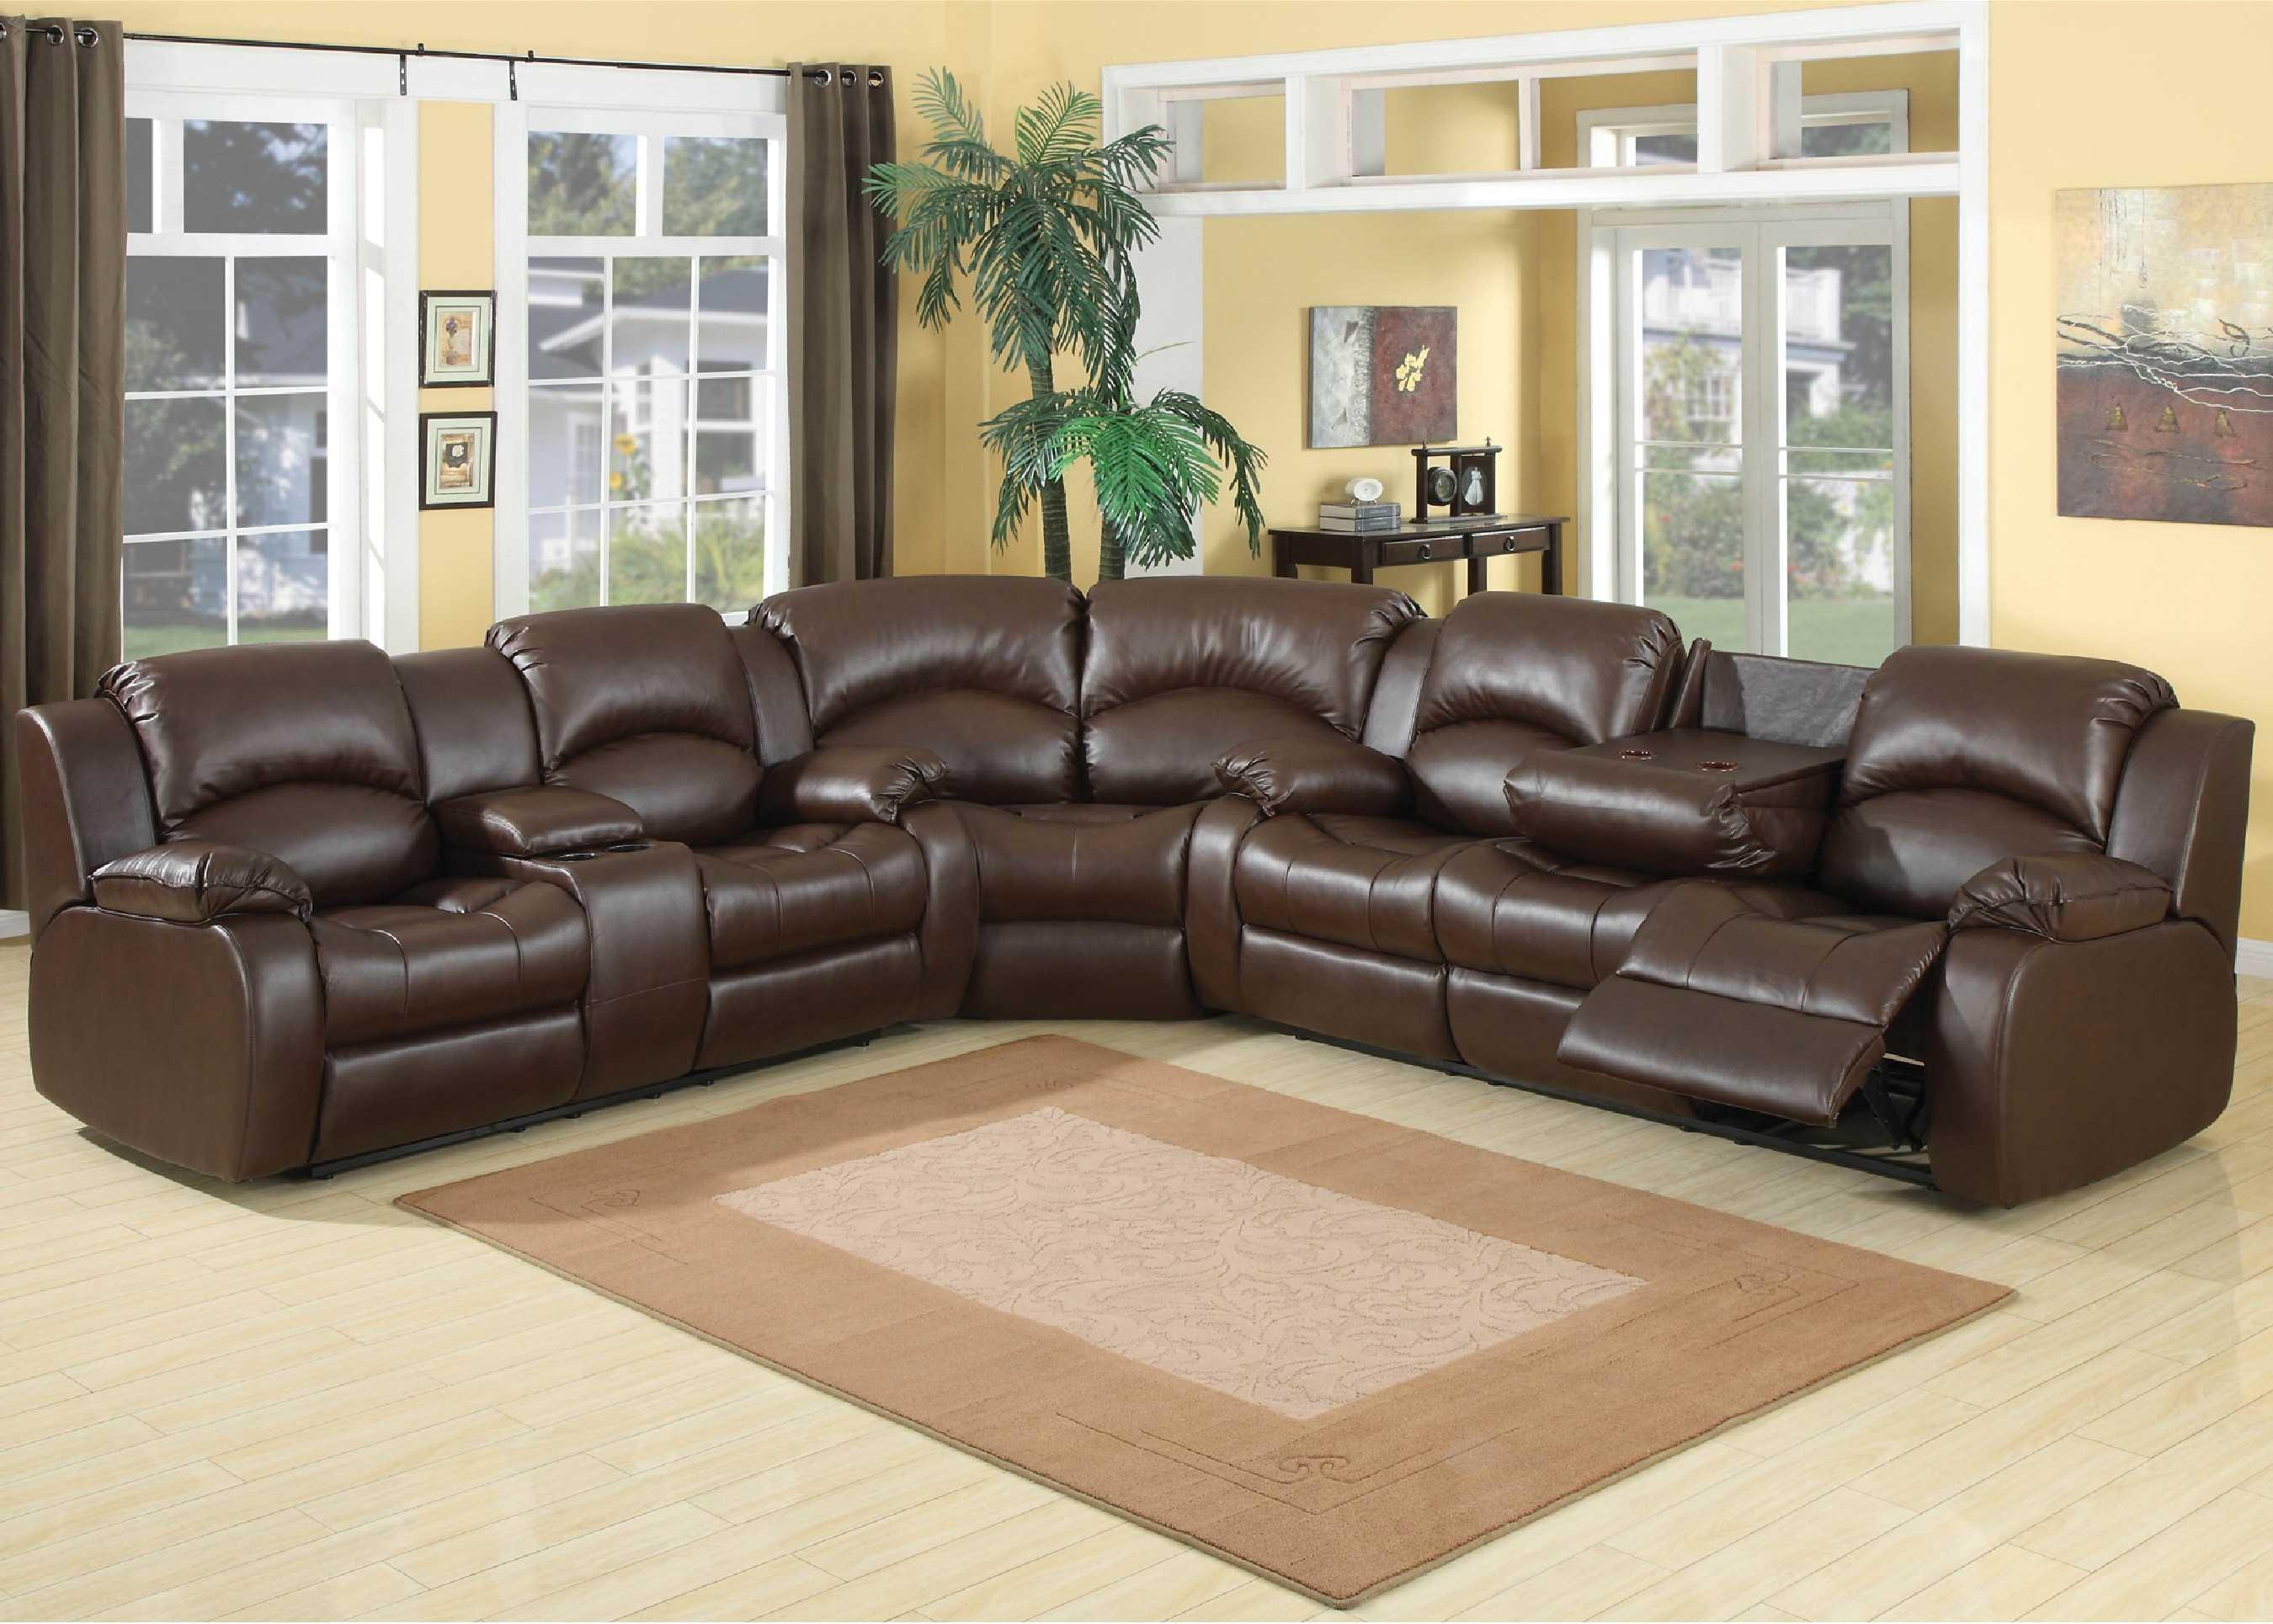 Living Room : Sectional Sofas With Recliners For Small Spaces In Sectional Sofa Recliners (Image 10 of 20)